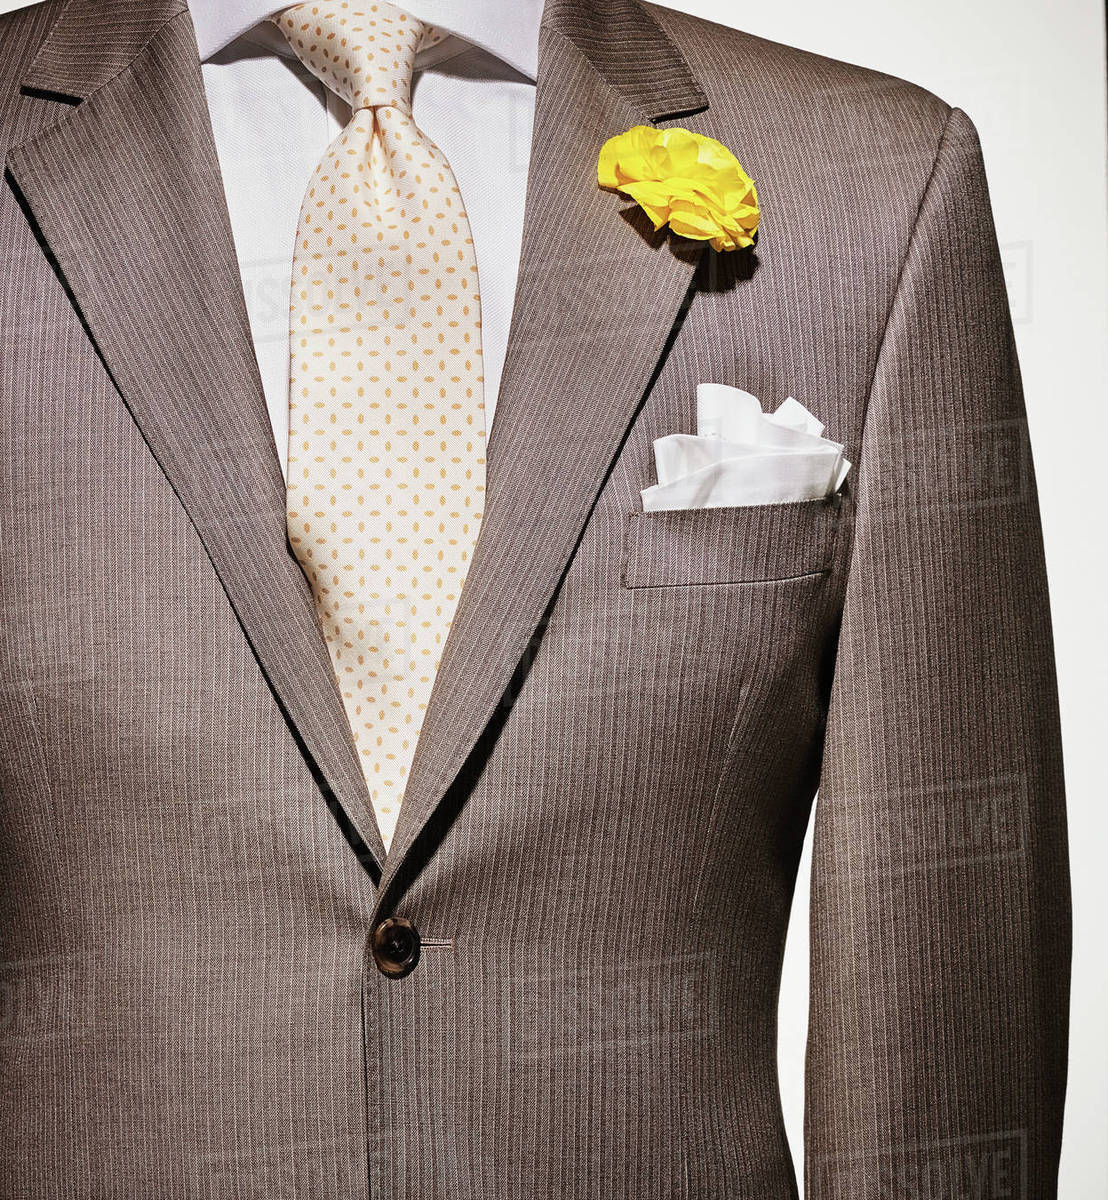 Detail of a light brown suit jacket with cream colored shirt and ...